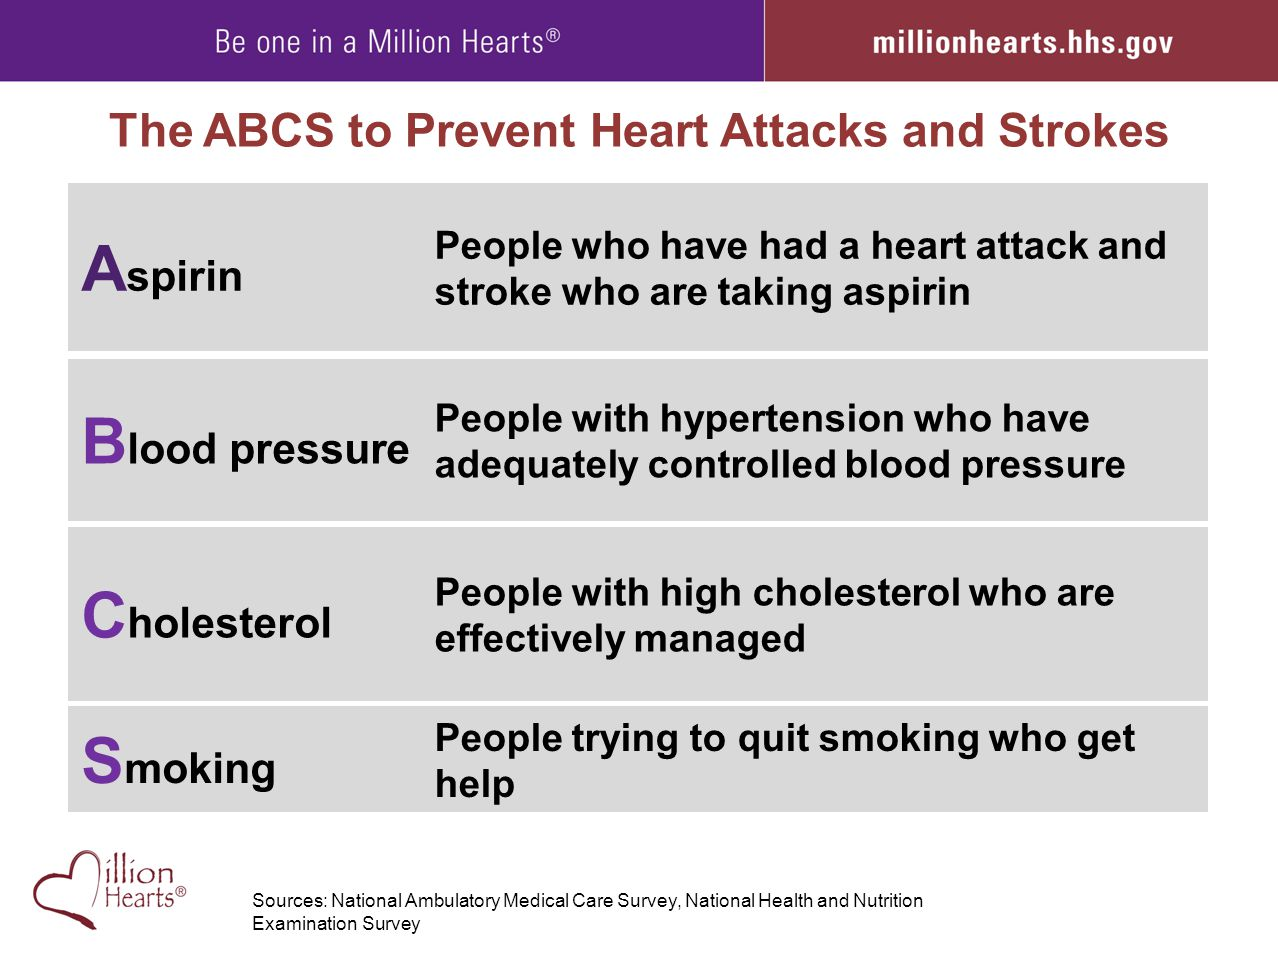 The ABCS to Prevent Heart Attacks and Strokes